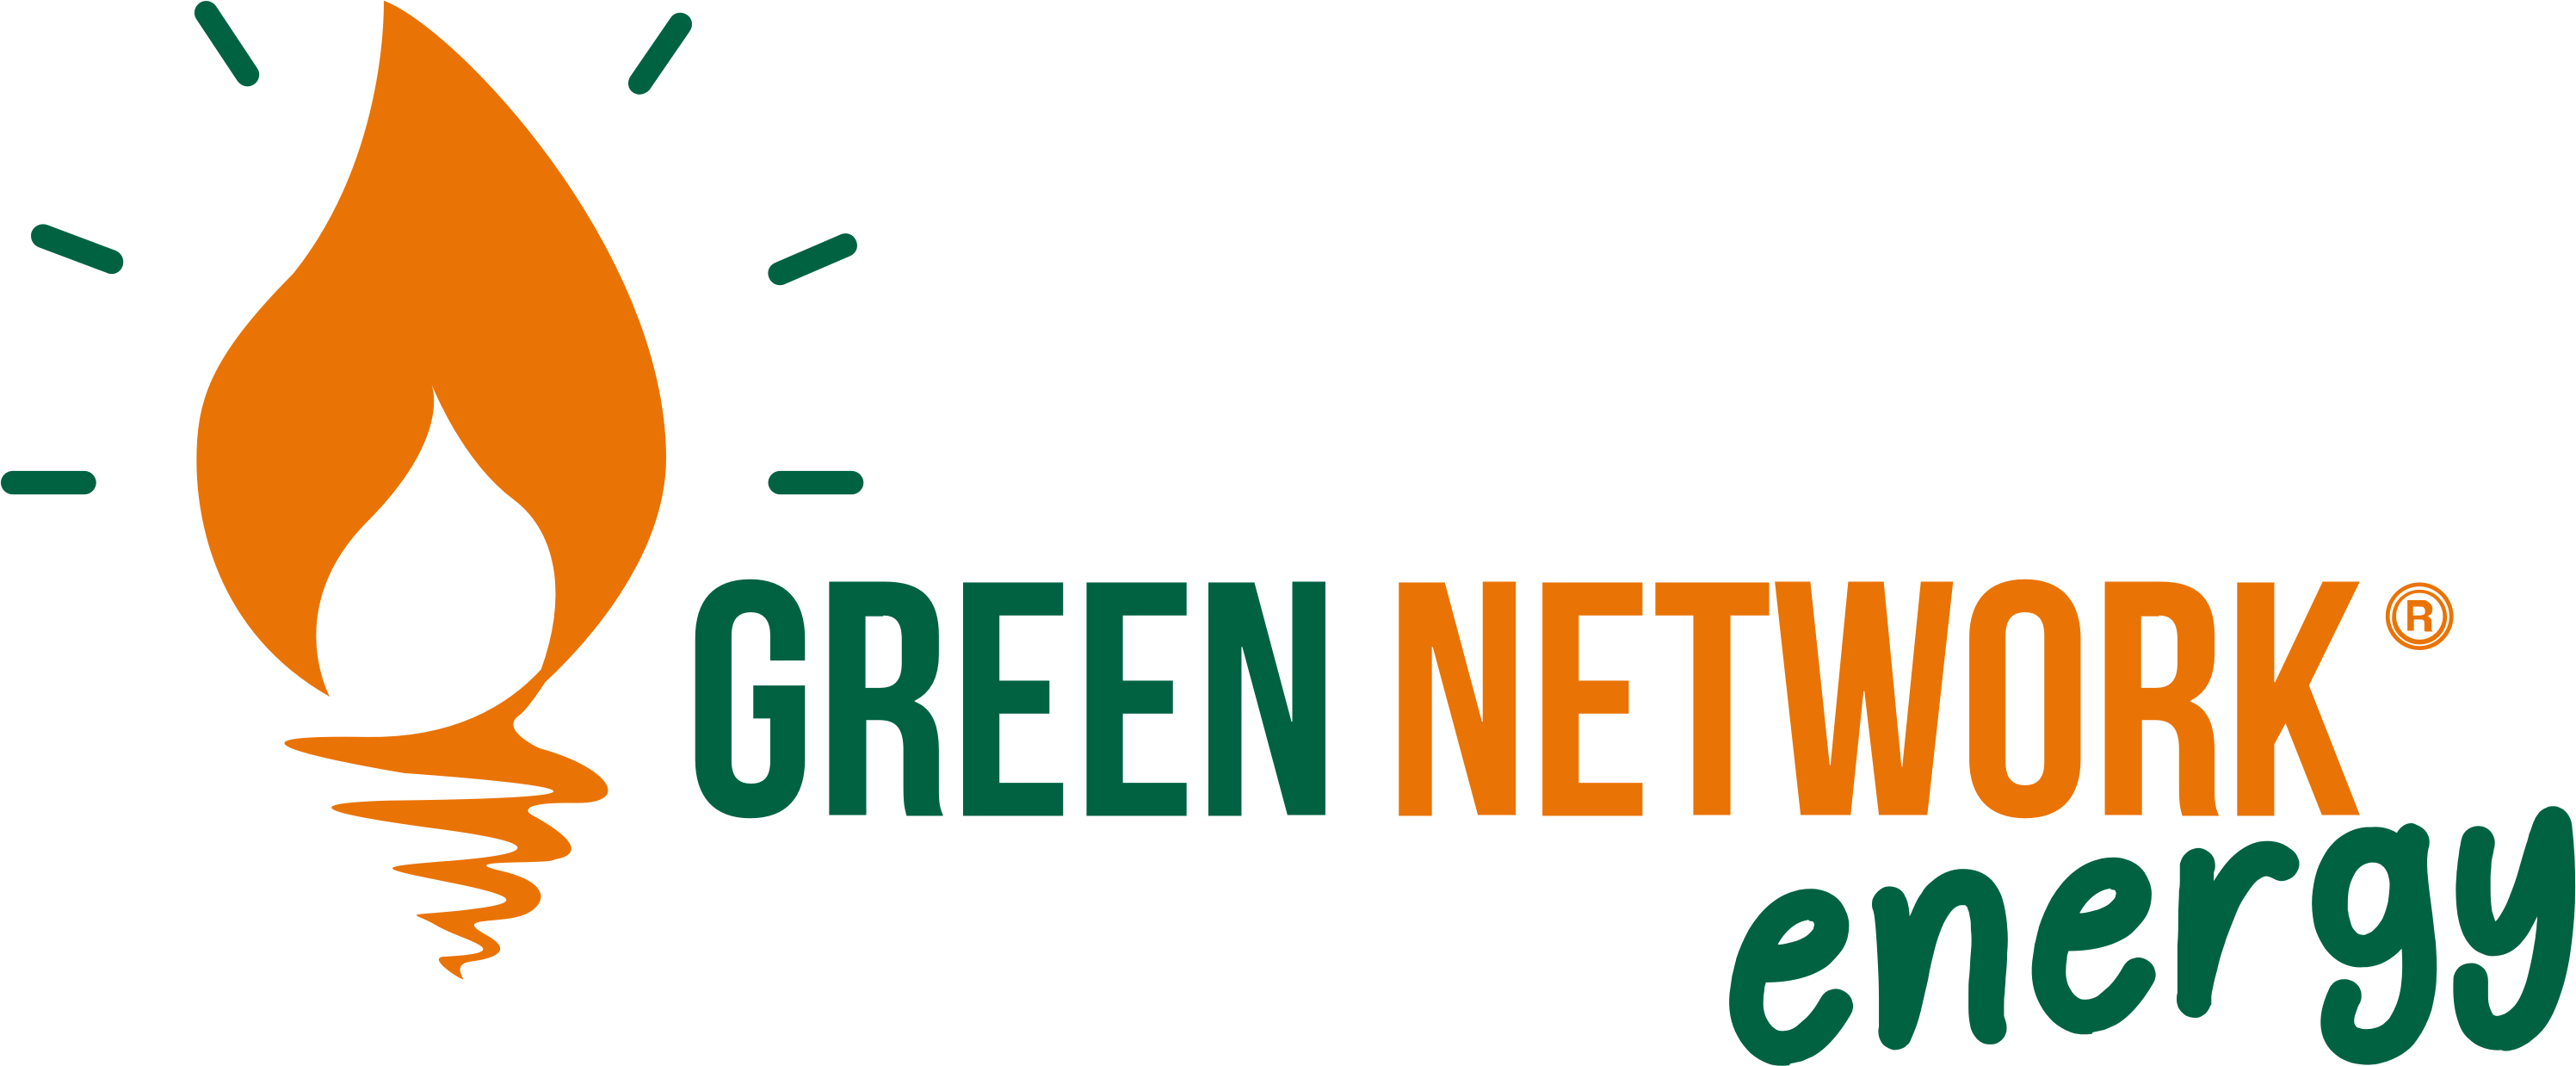 Green Network Energy